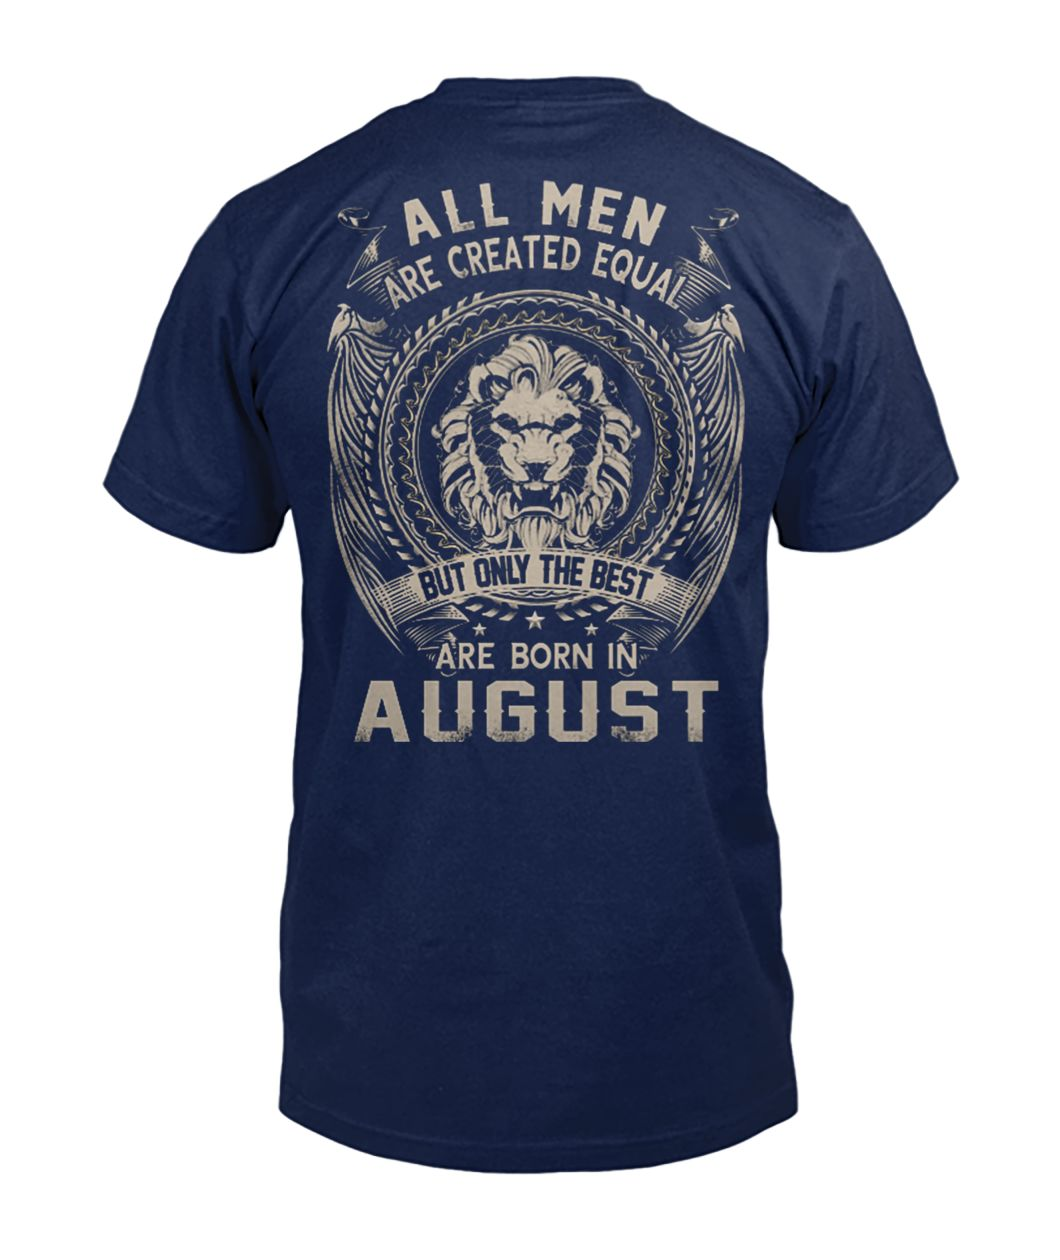 All men created equal but the best born in august mens v-neck